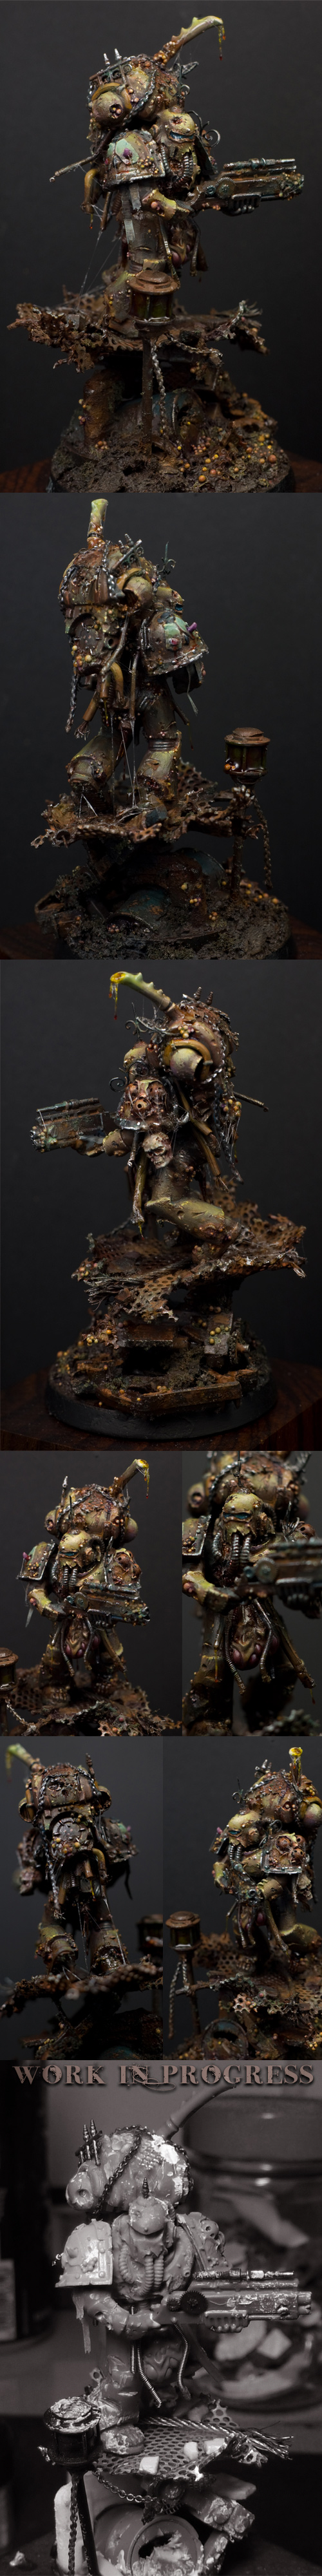 The Wayfarer - Nurgle Death Guard Fallen